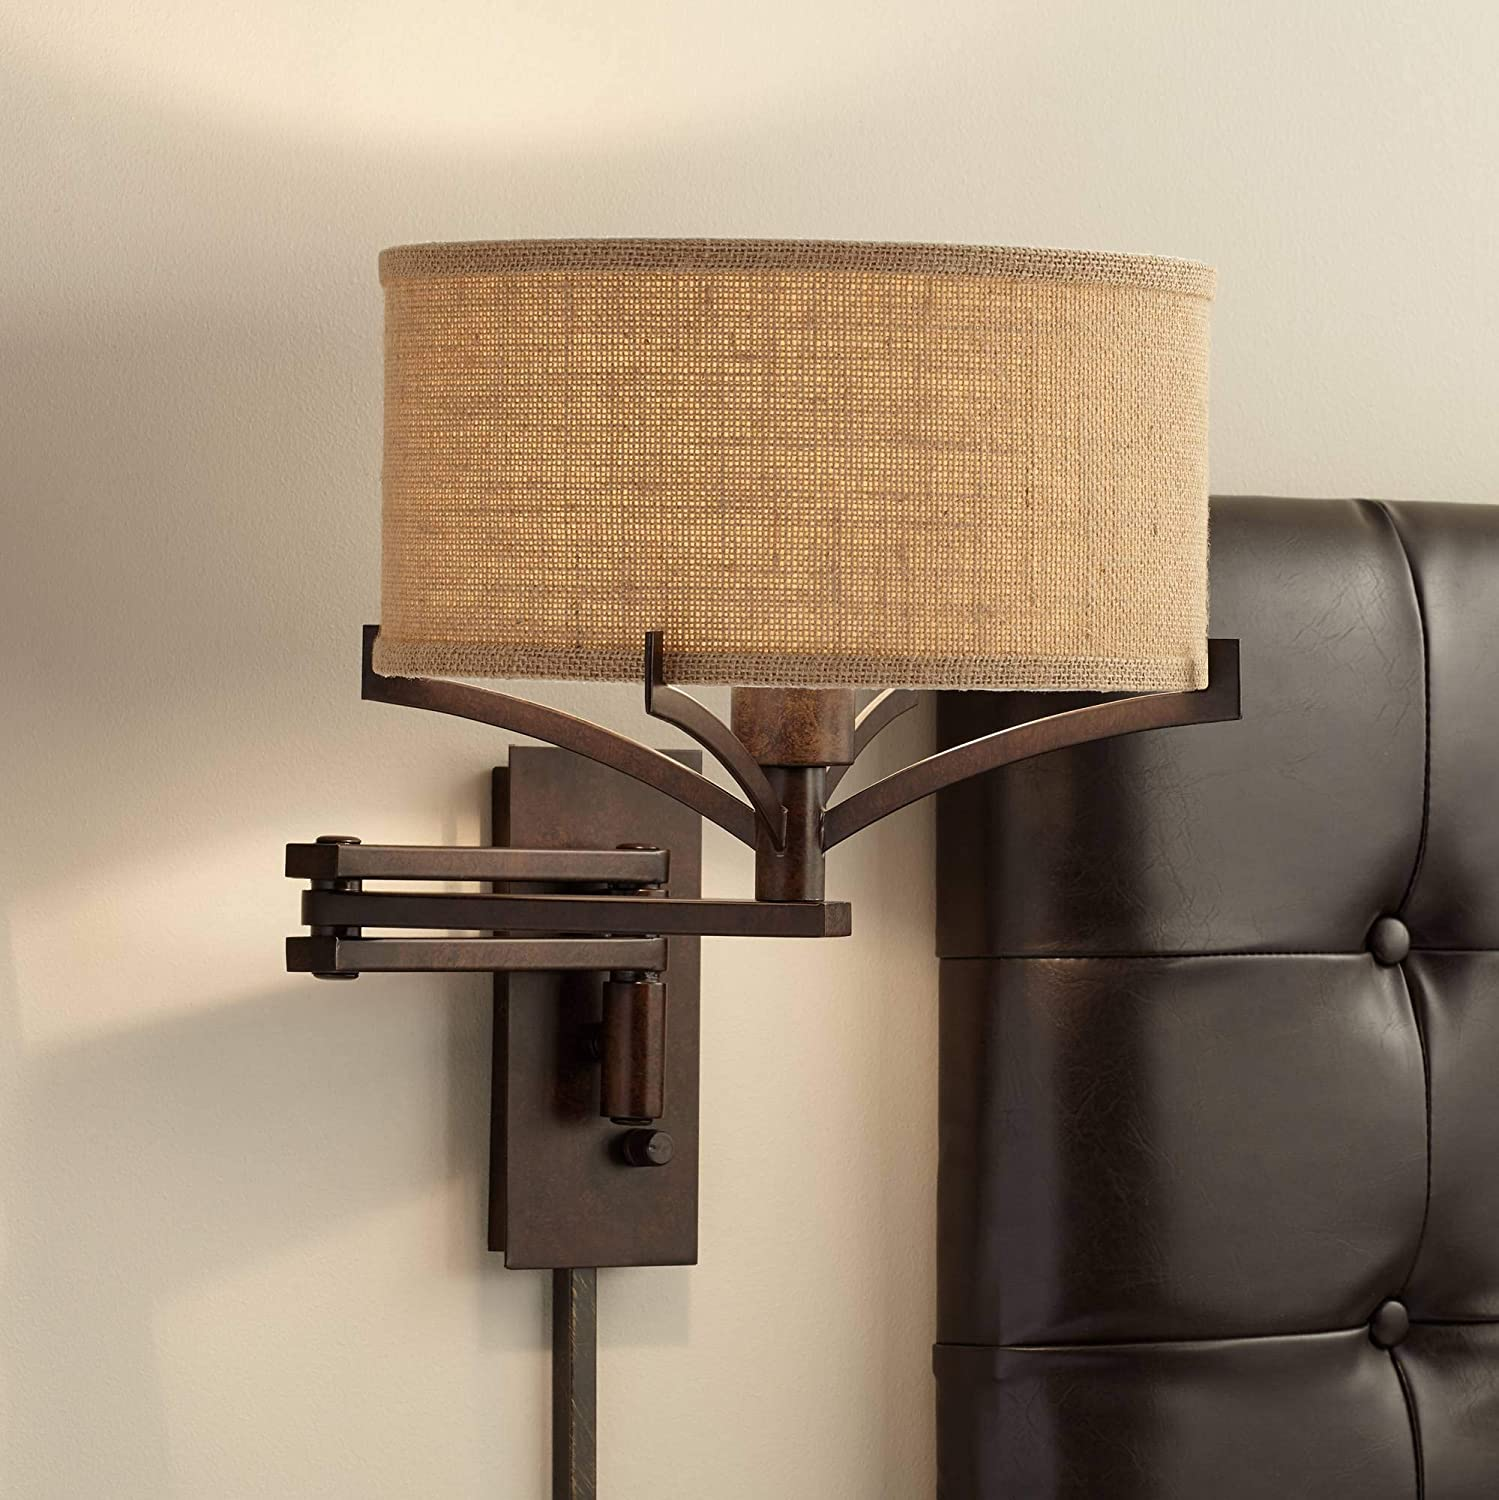 Tremont Rustic Farmhouse Swing Arm Wall Lamp Bronze Plug-in Light Fixture Tan Burlap Drum Shade for Bedroom Bedside Living Room Reading - Franklin Iron Works